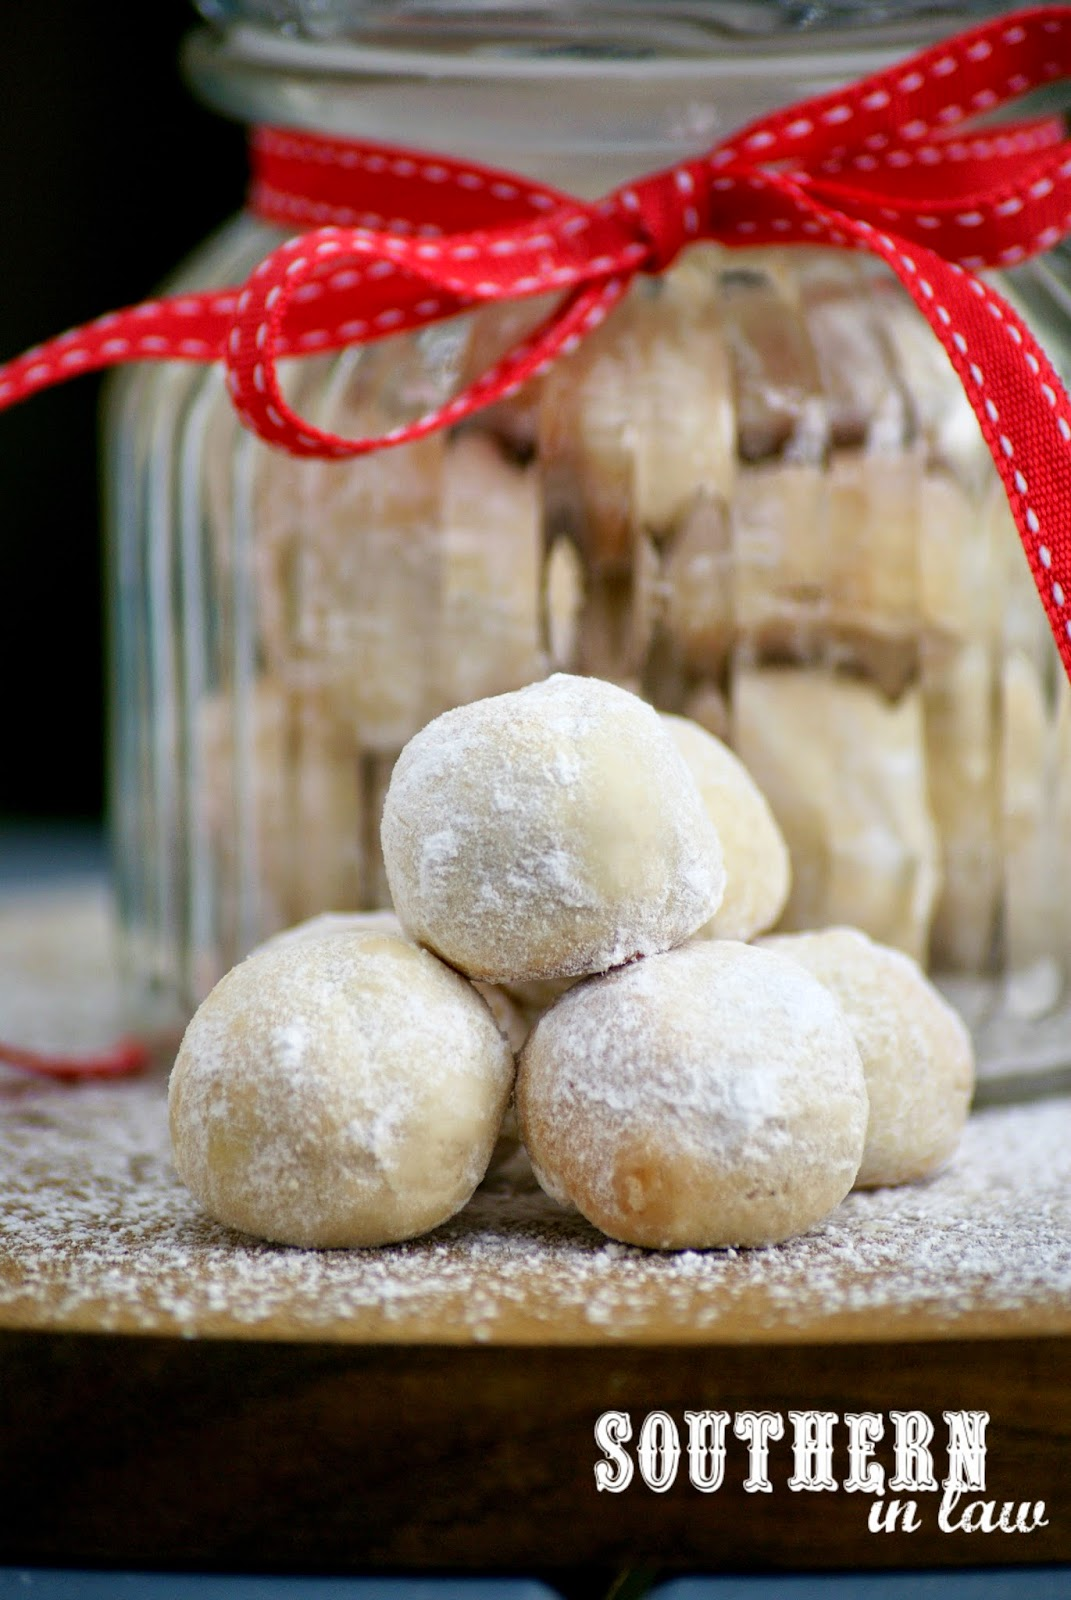 Low Fat Snowball Cookies Recipe - low fat, low sugar, gluten free, egg free, healthy - Christmas Cookie Gift Ideas in a Jar